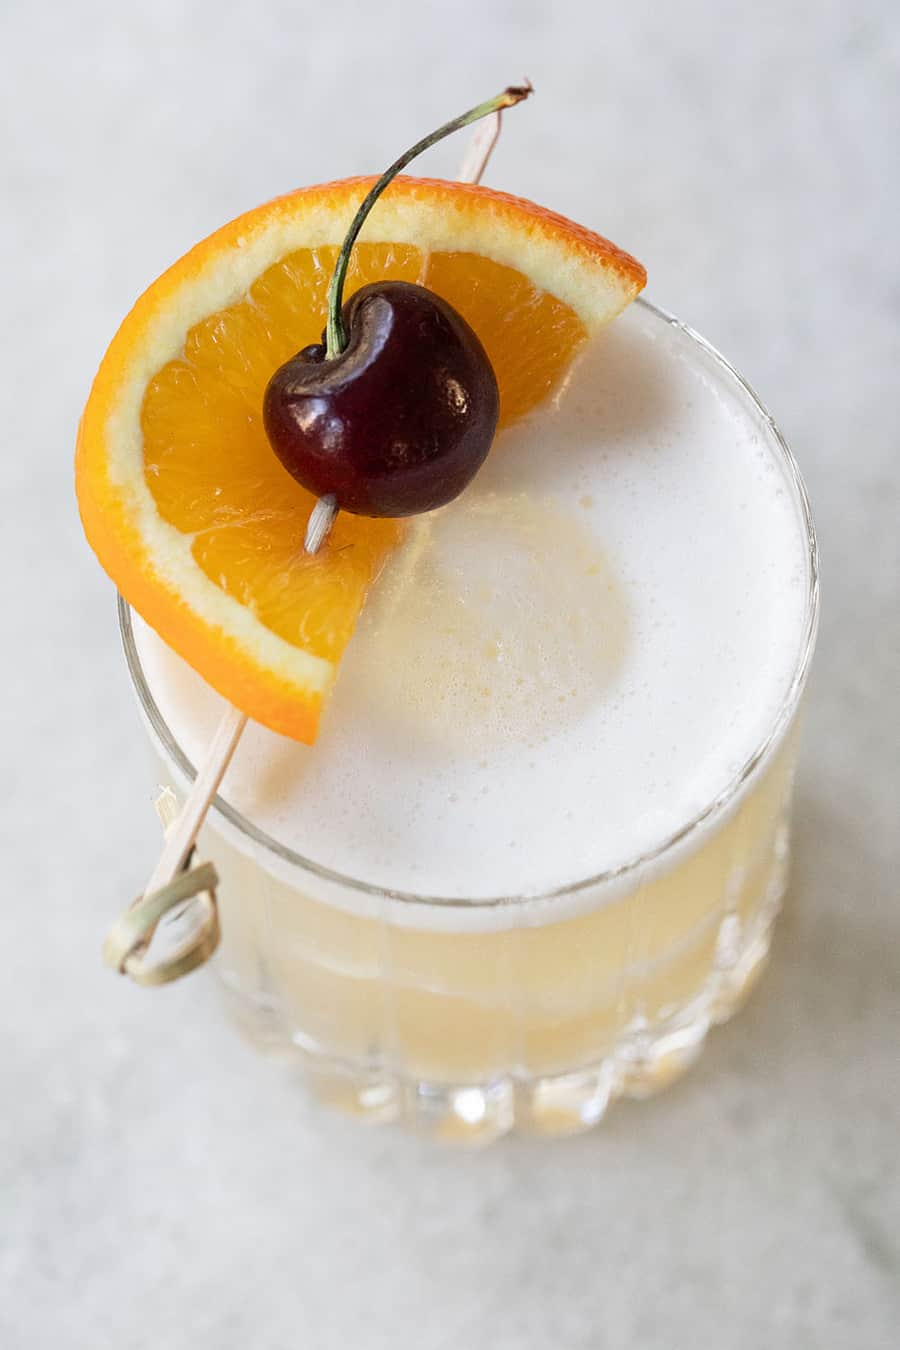 Whiskey sour with an orange slice and fresh cherry on top.